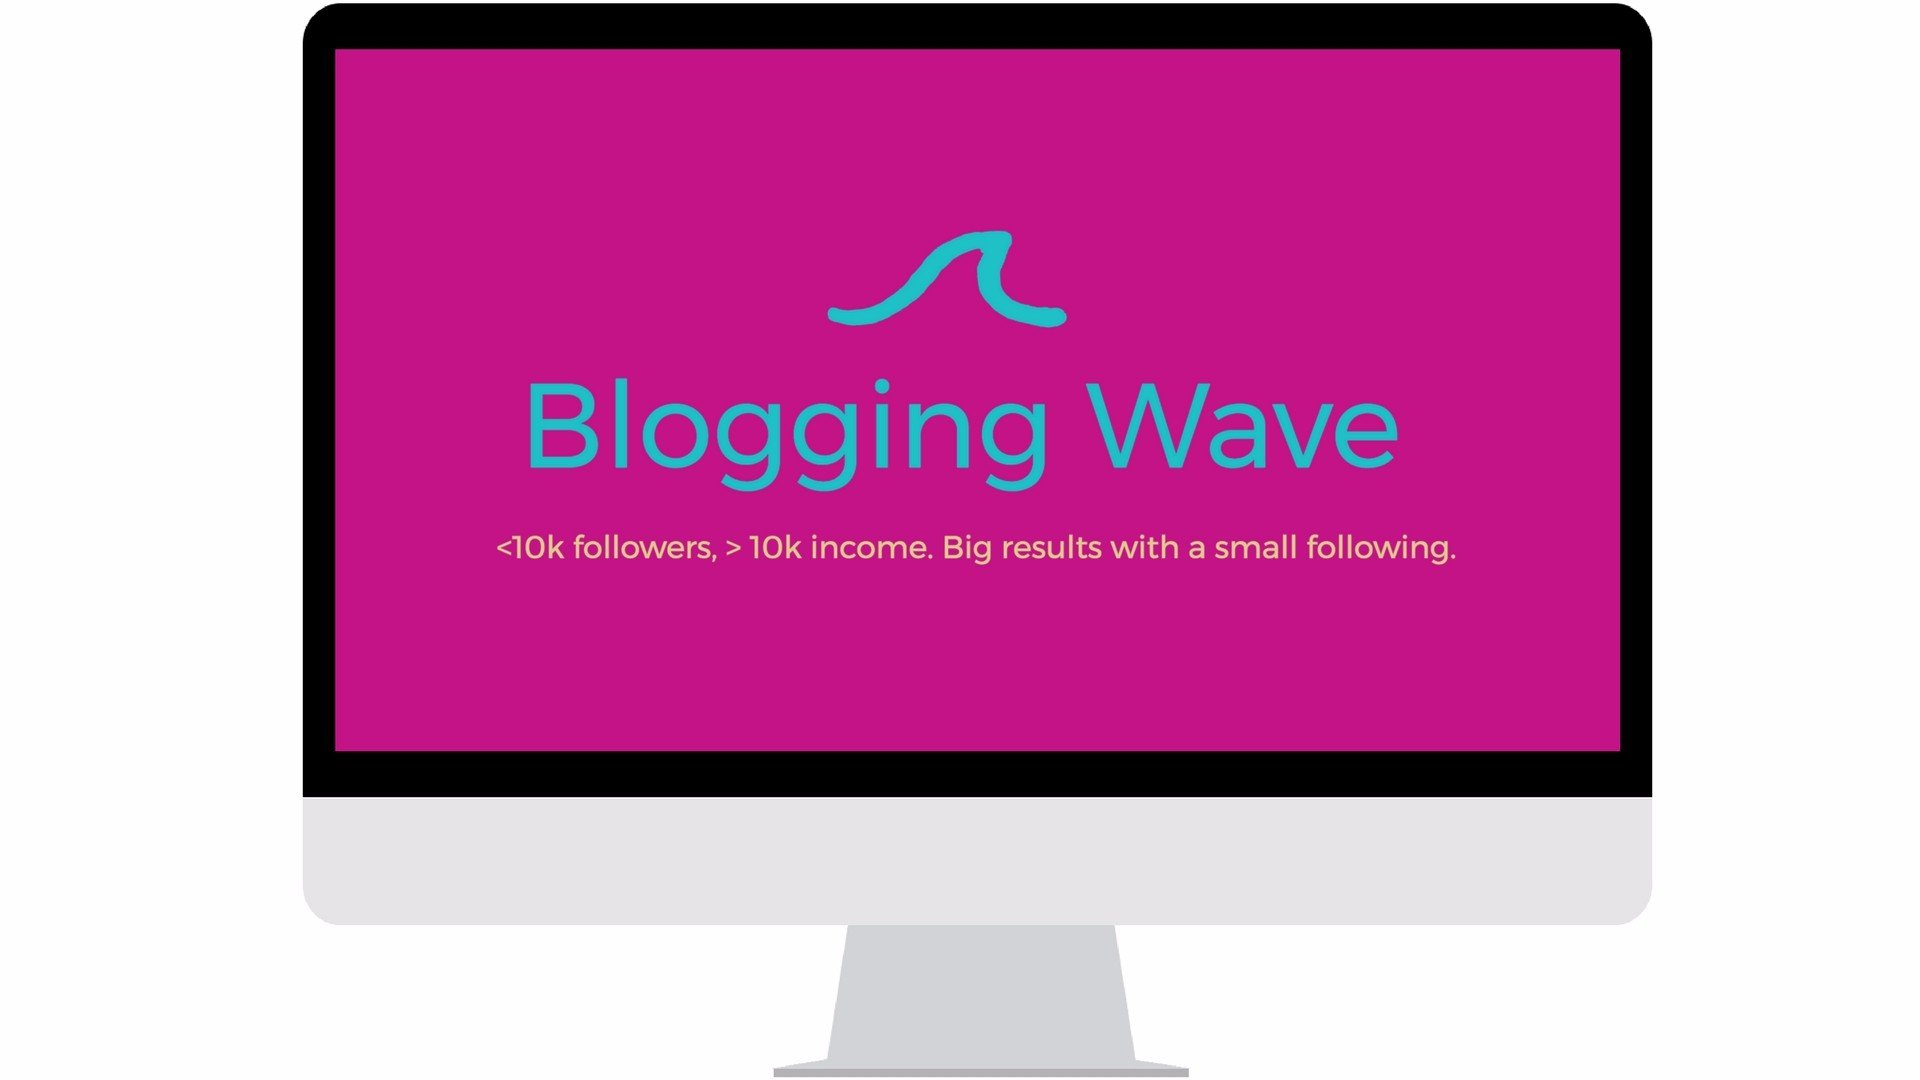 Blogging Wave. less than 10 000 followers over 10 thousand income. Big results with a small following